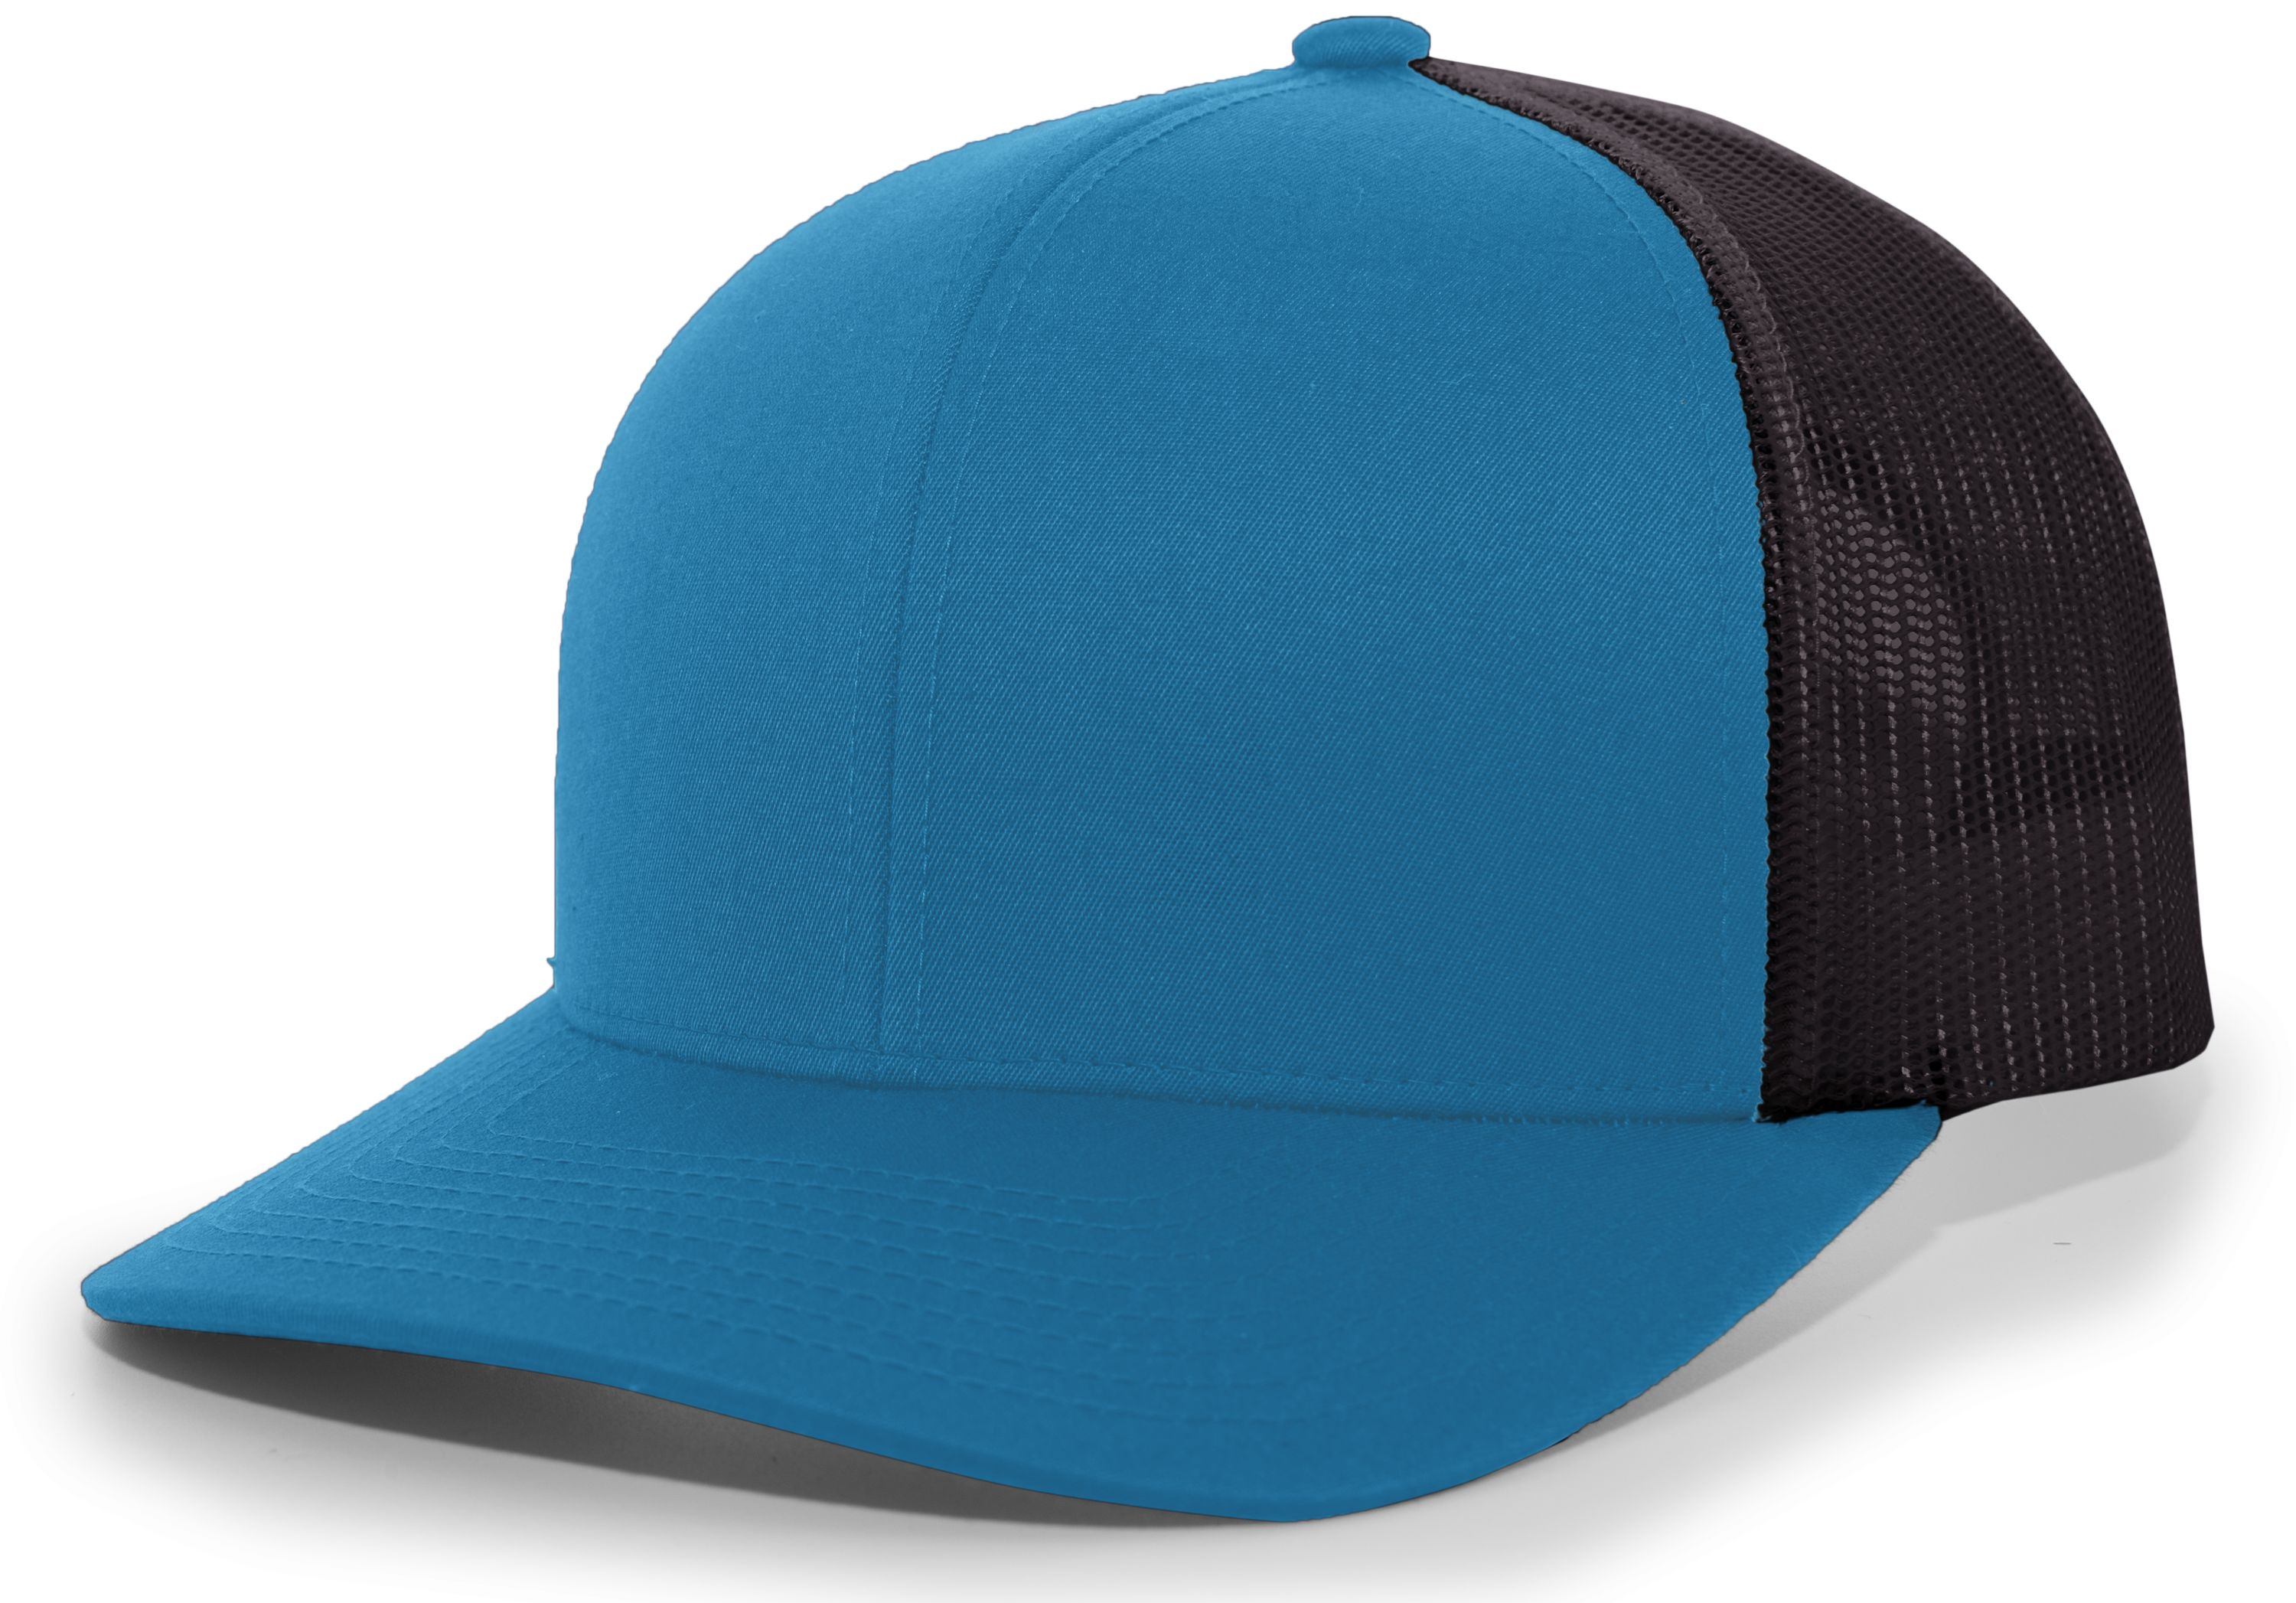 Trucker Snapback Cap - PANTHER TEAL/CHARCOAL/PANTHER TEAL